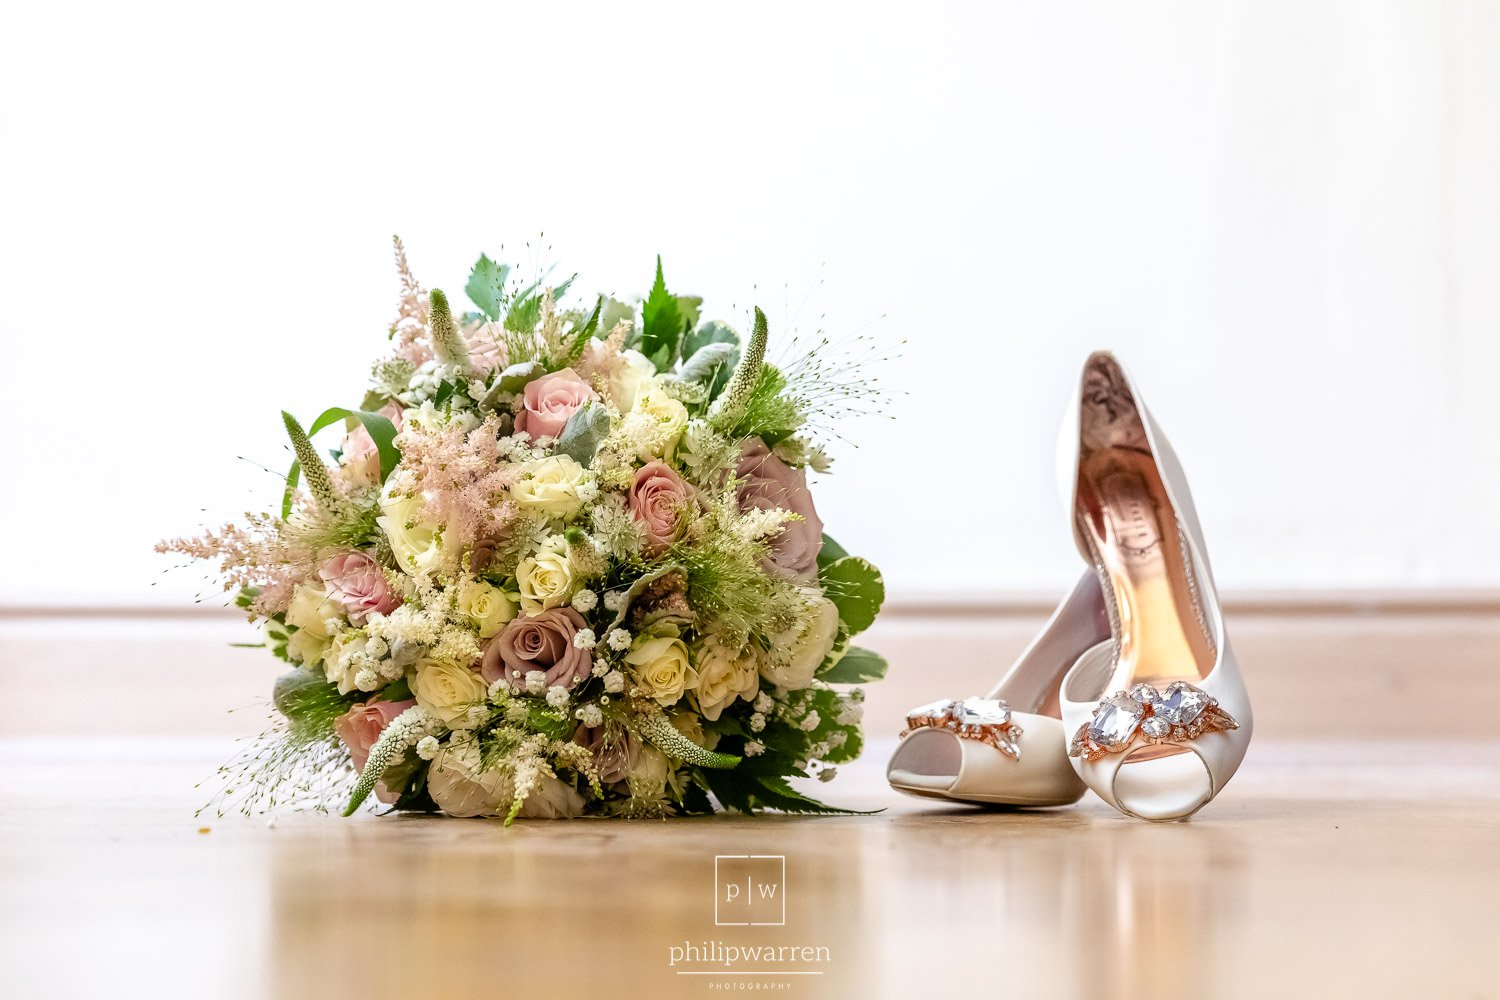 wedding bouquet and wedding shoes on wooden floor